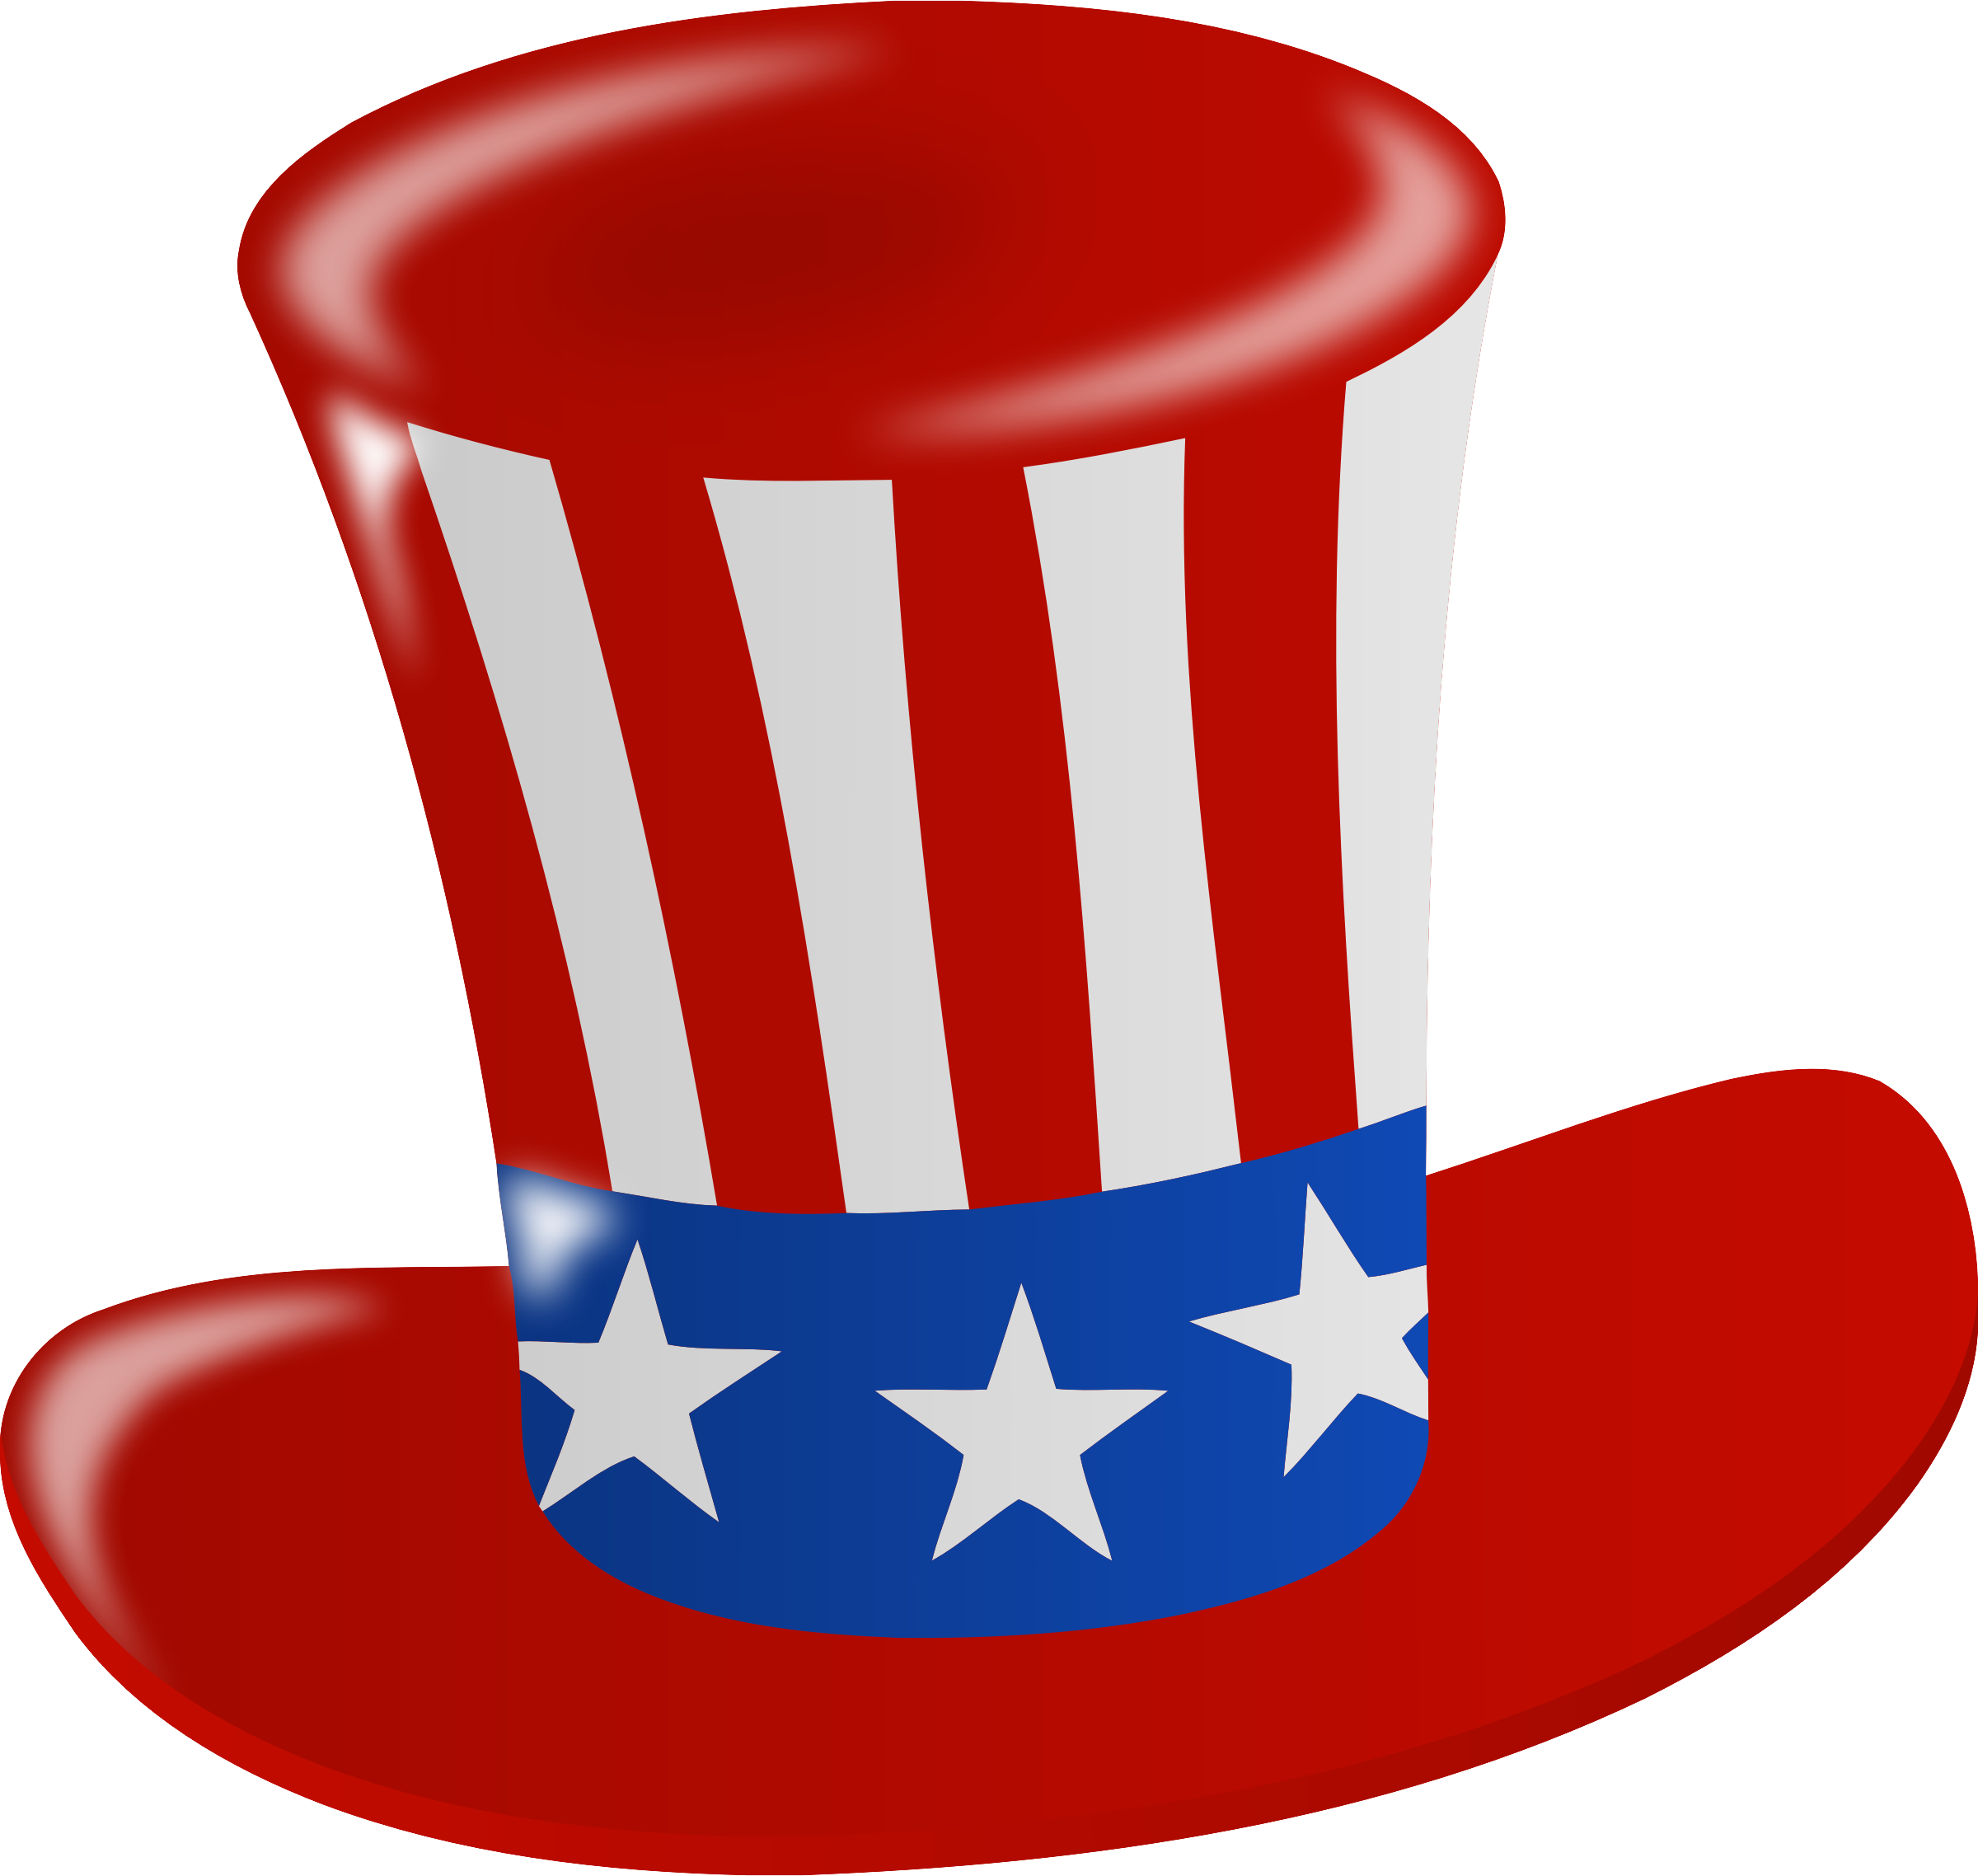 Clipart us banner library download Clipart - US flag hat banner library download